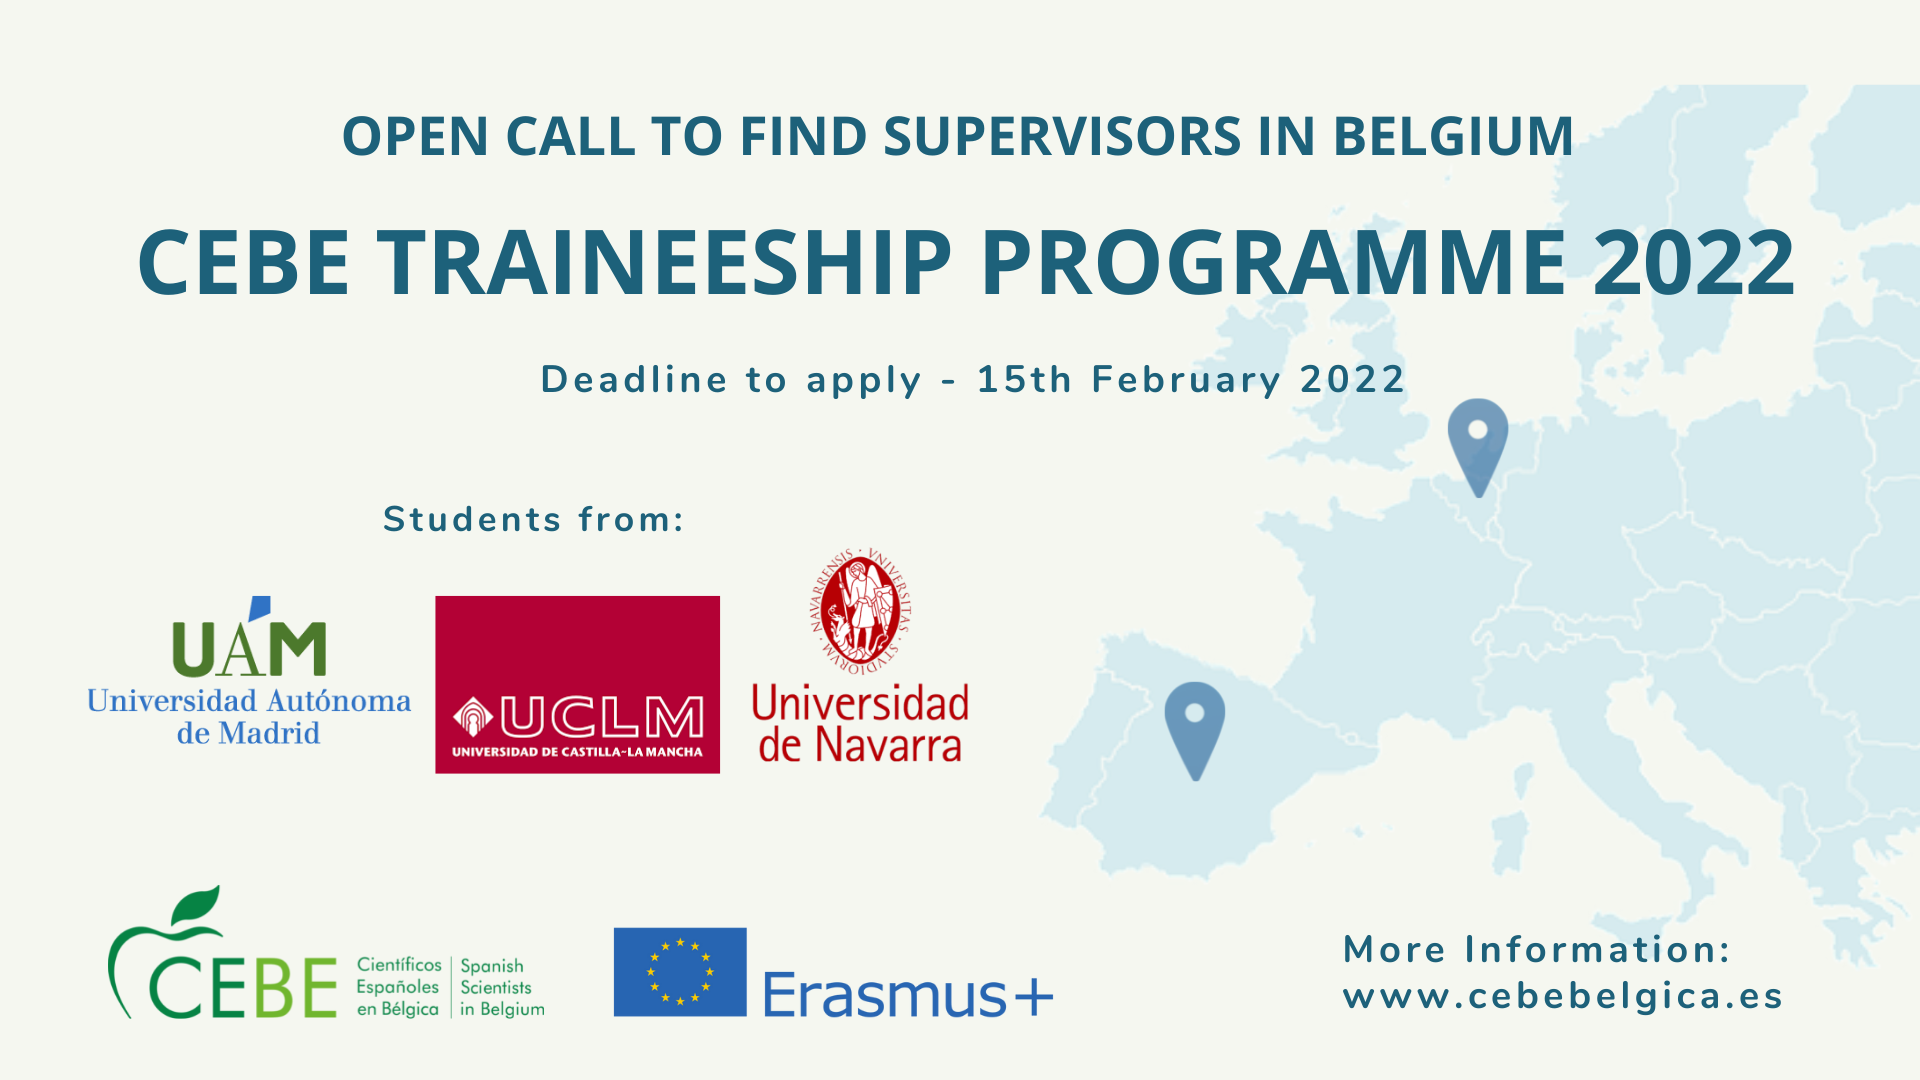 CEBE Traineeship program 2021 - deadline extended